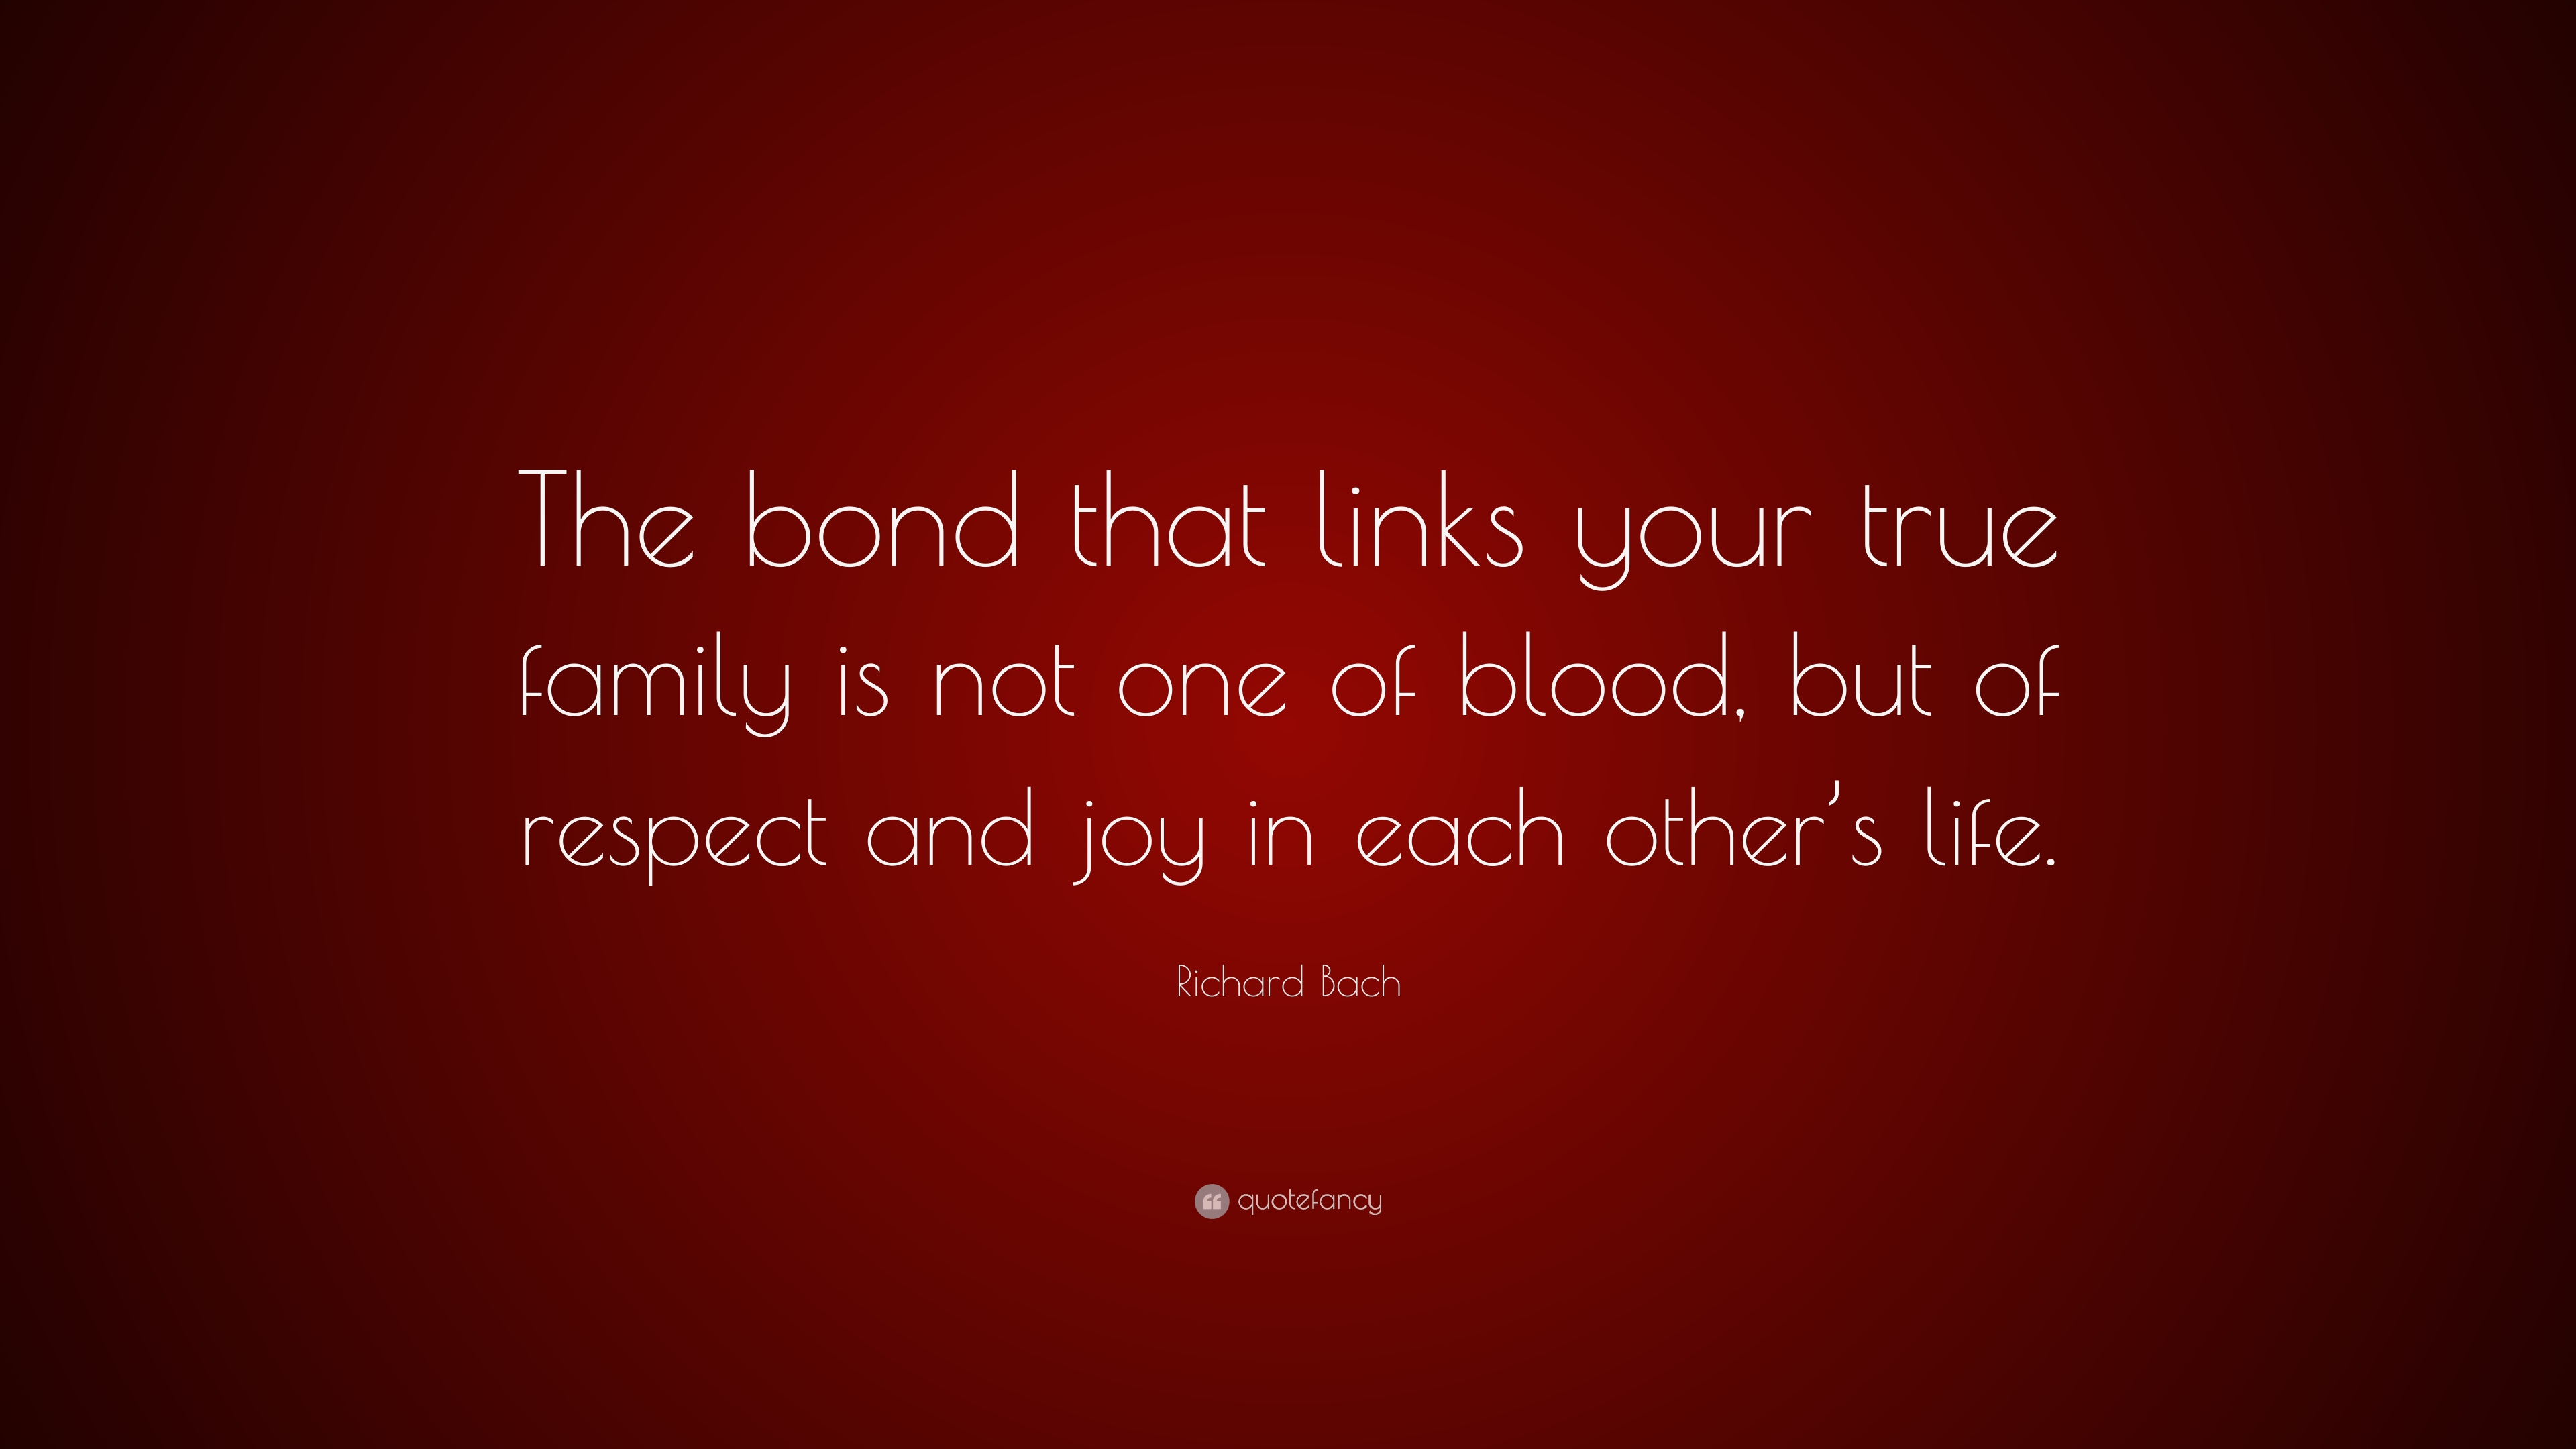 the bond that links your true family